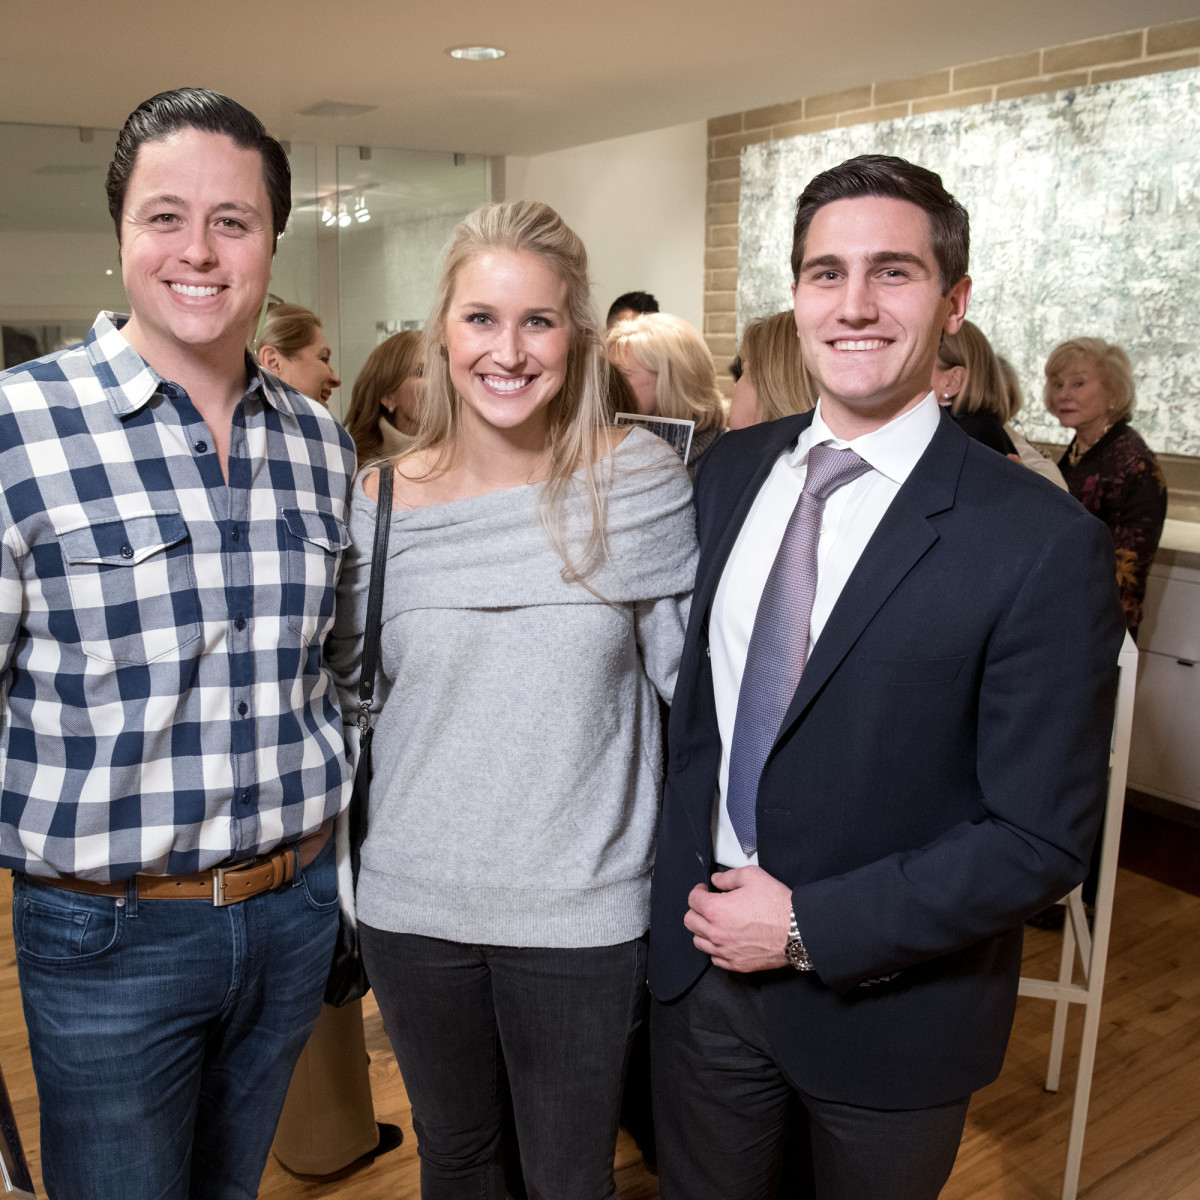 Dallas, LR Art House opening, January 2018, Ryan Hoopes, Emily Hoopes, Anthony Chammah